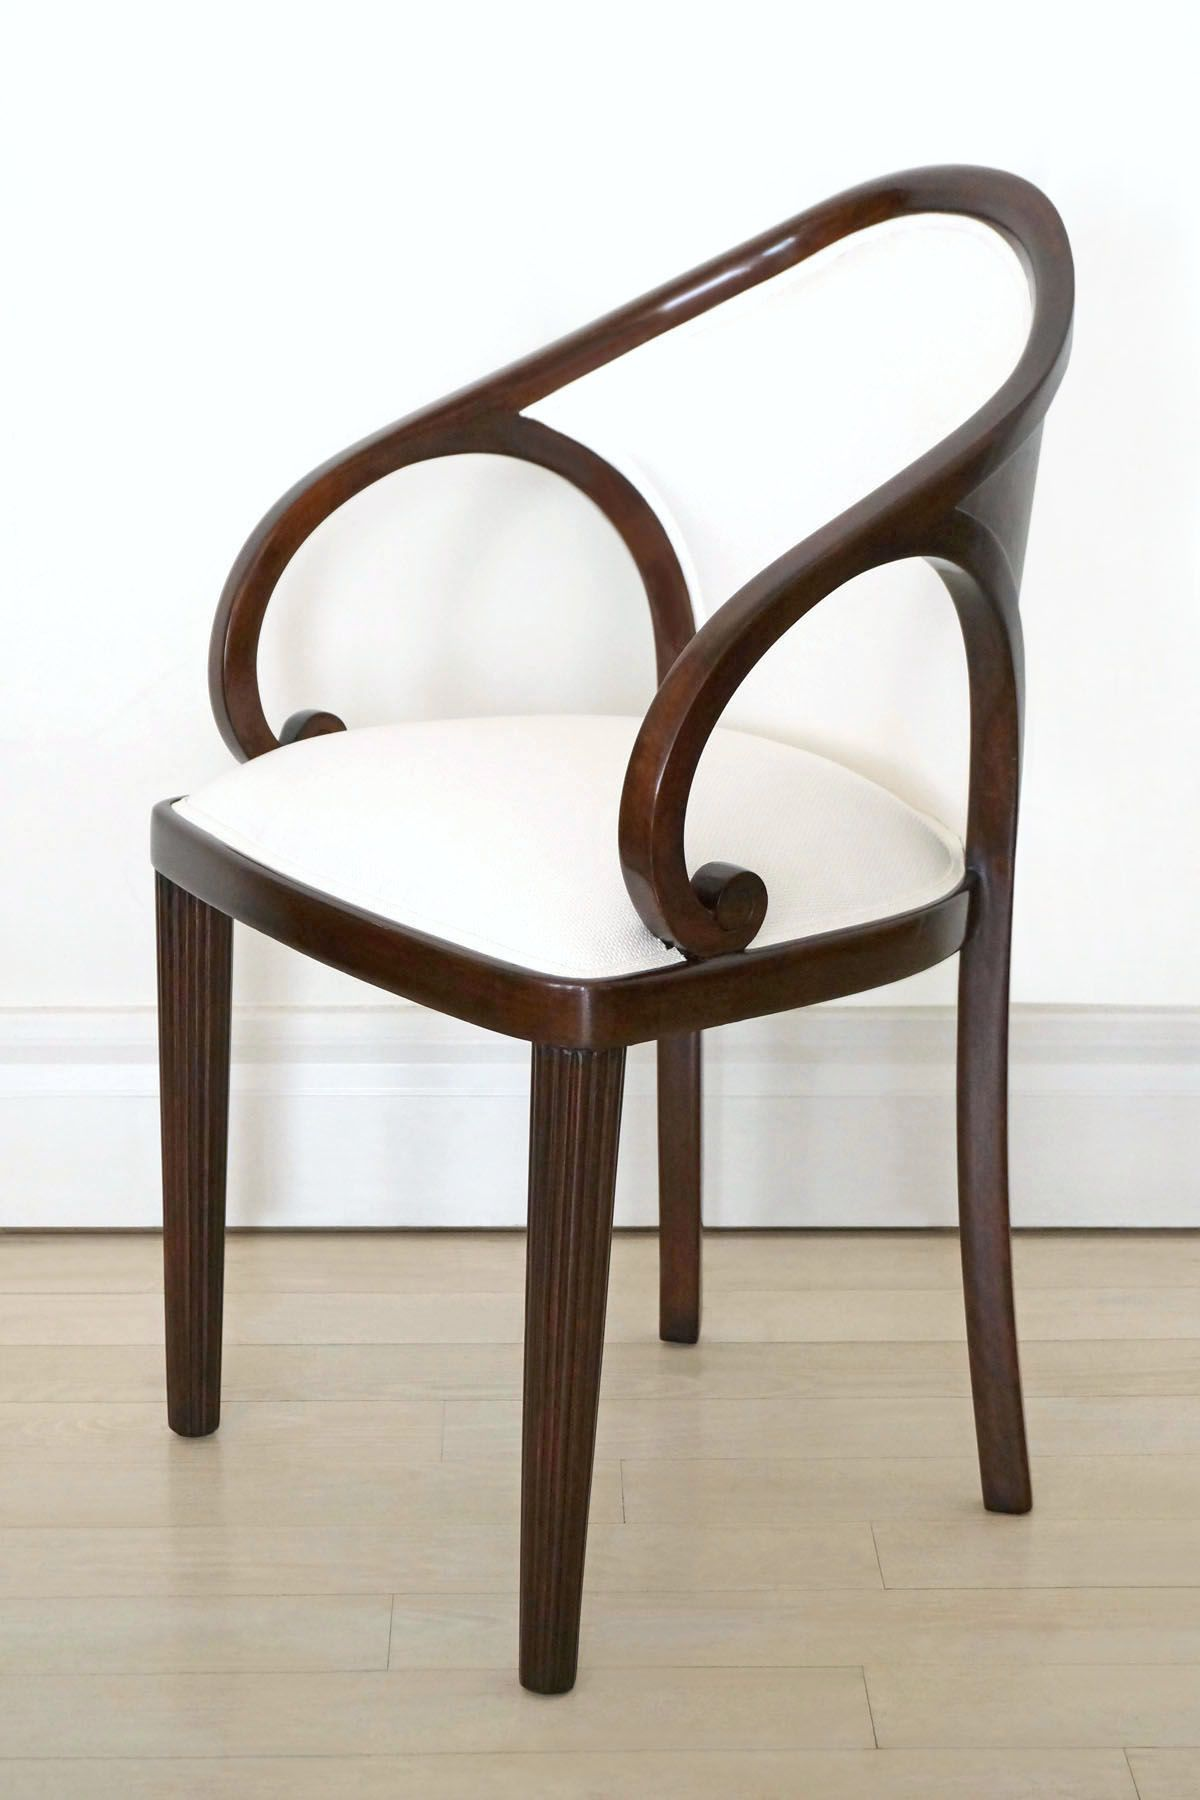 Art deco office chair Swivel Art Deco Desk Chair With Fluted Legs Curved Wood Back And Scroll Arms France Circa 1940 Pinterest Art Deco Desk Chair With Fluted Legs Curved Wood Back And Scroll